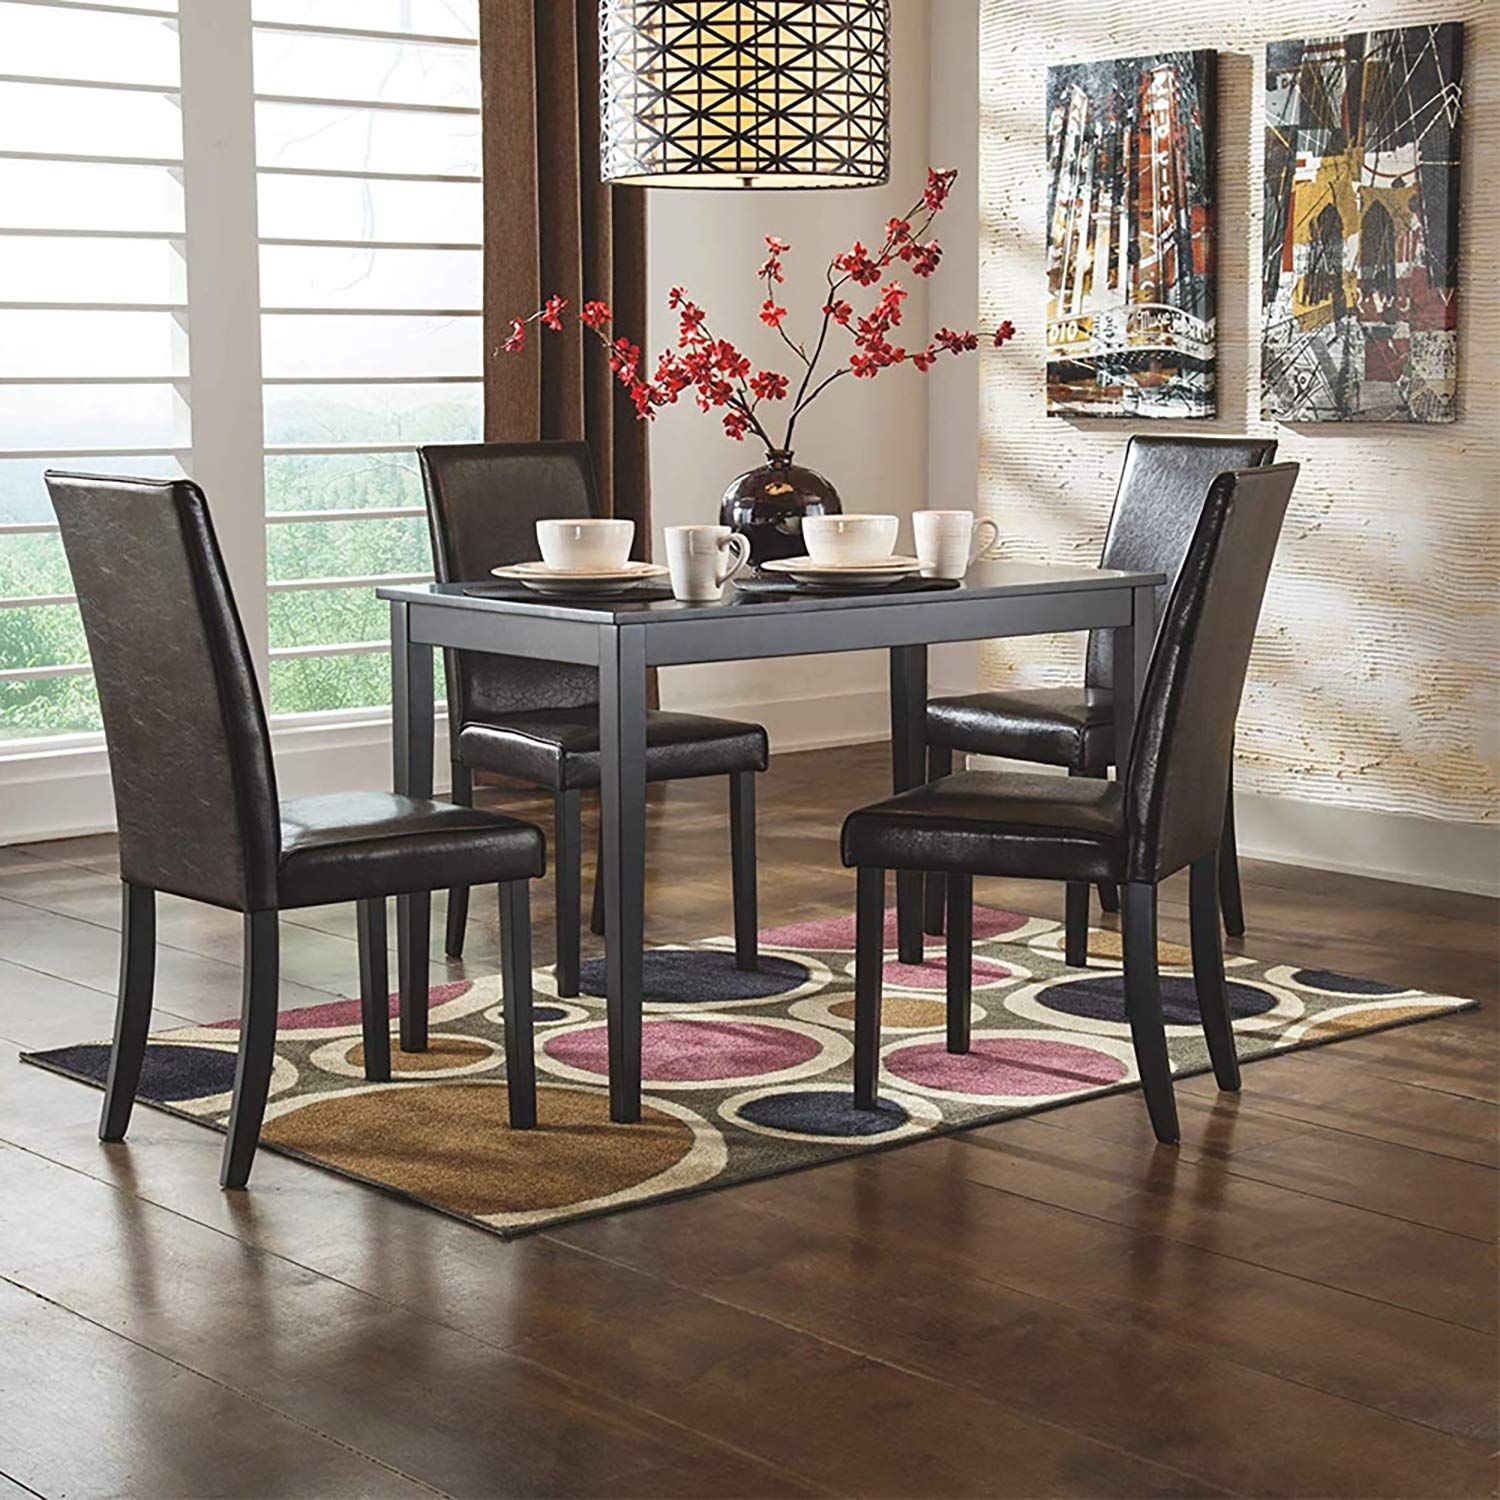 Furgle 7 Piece Furniture Kitchen Dining Table Set With Oak Wood